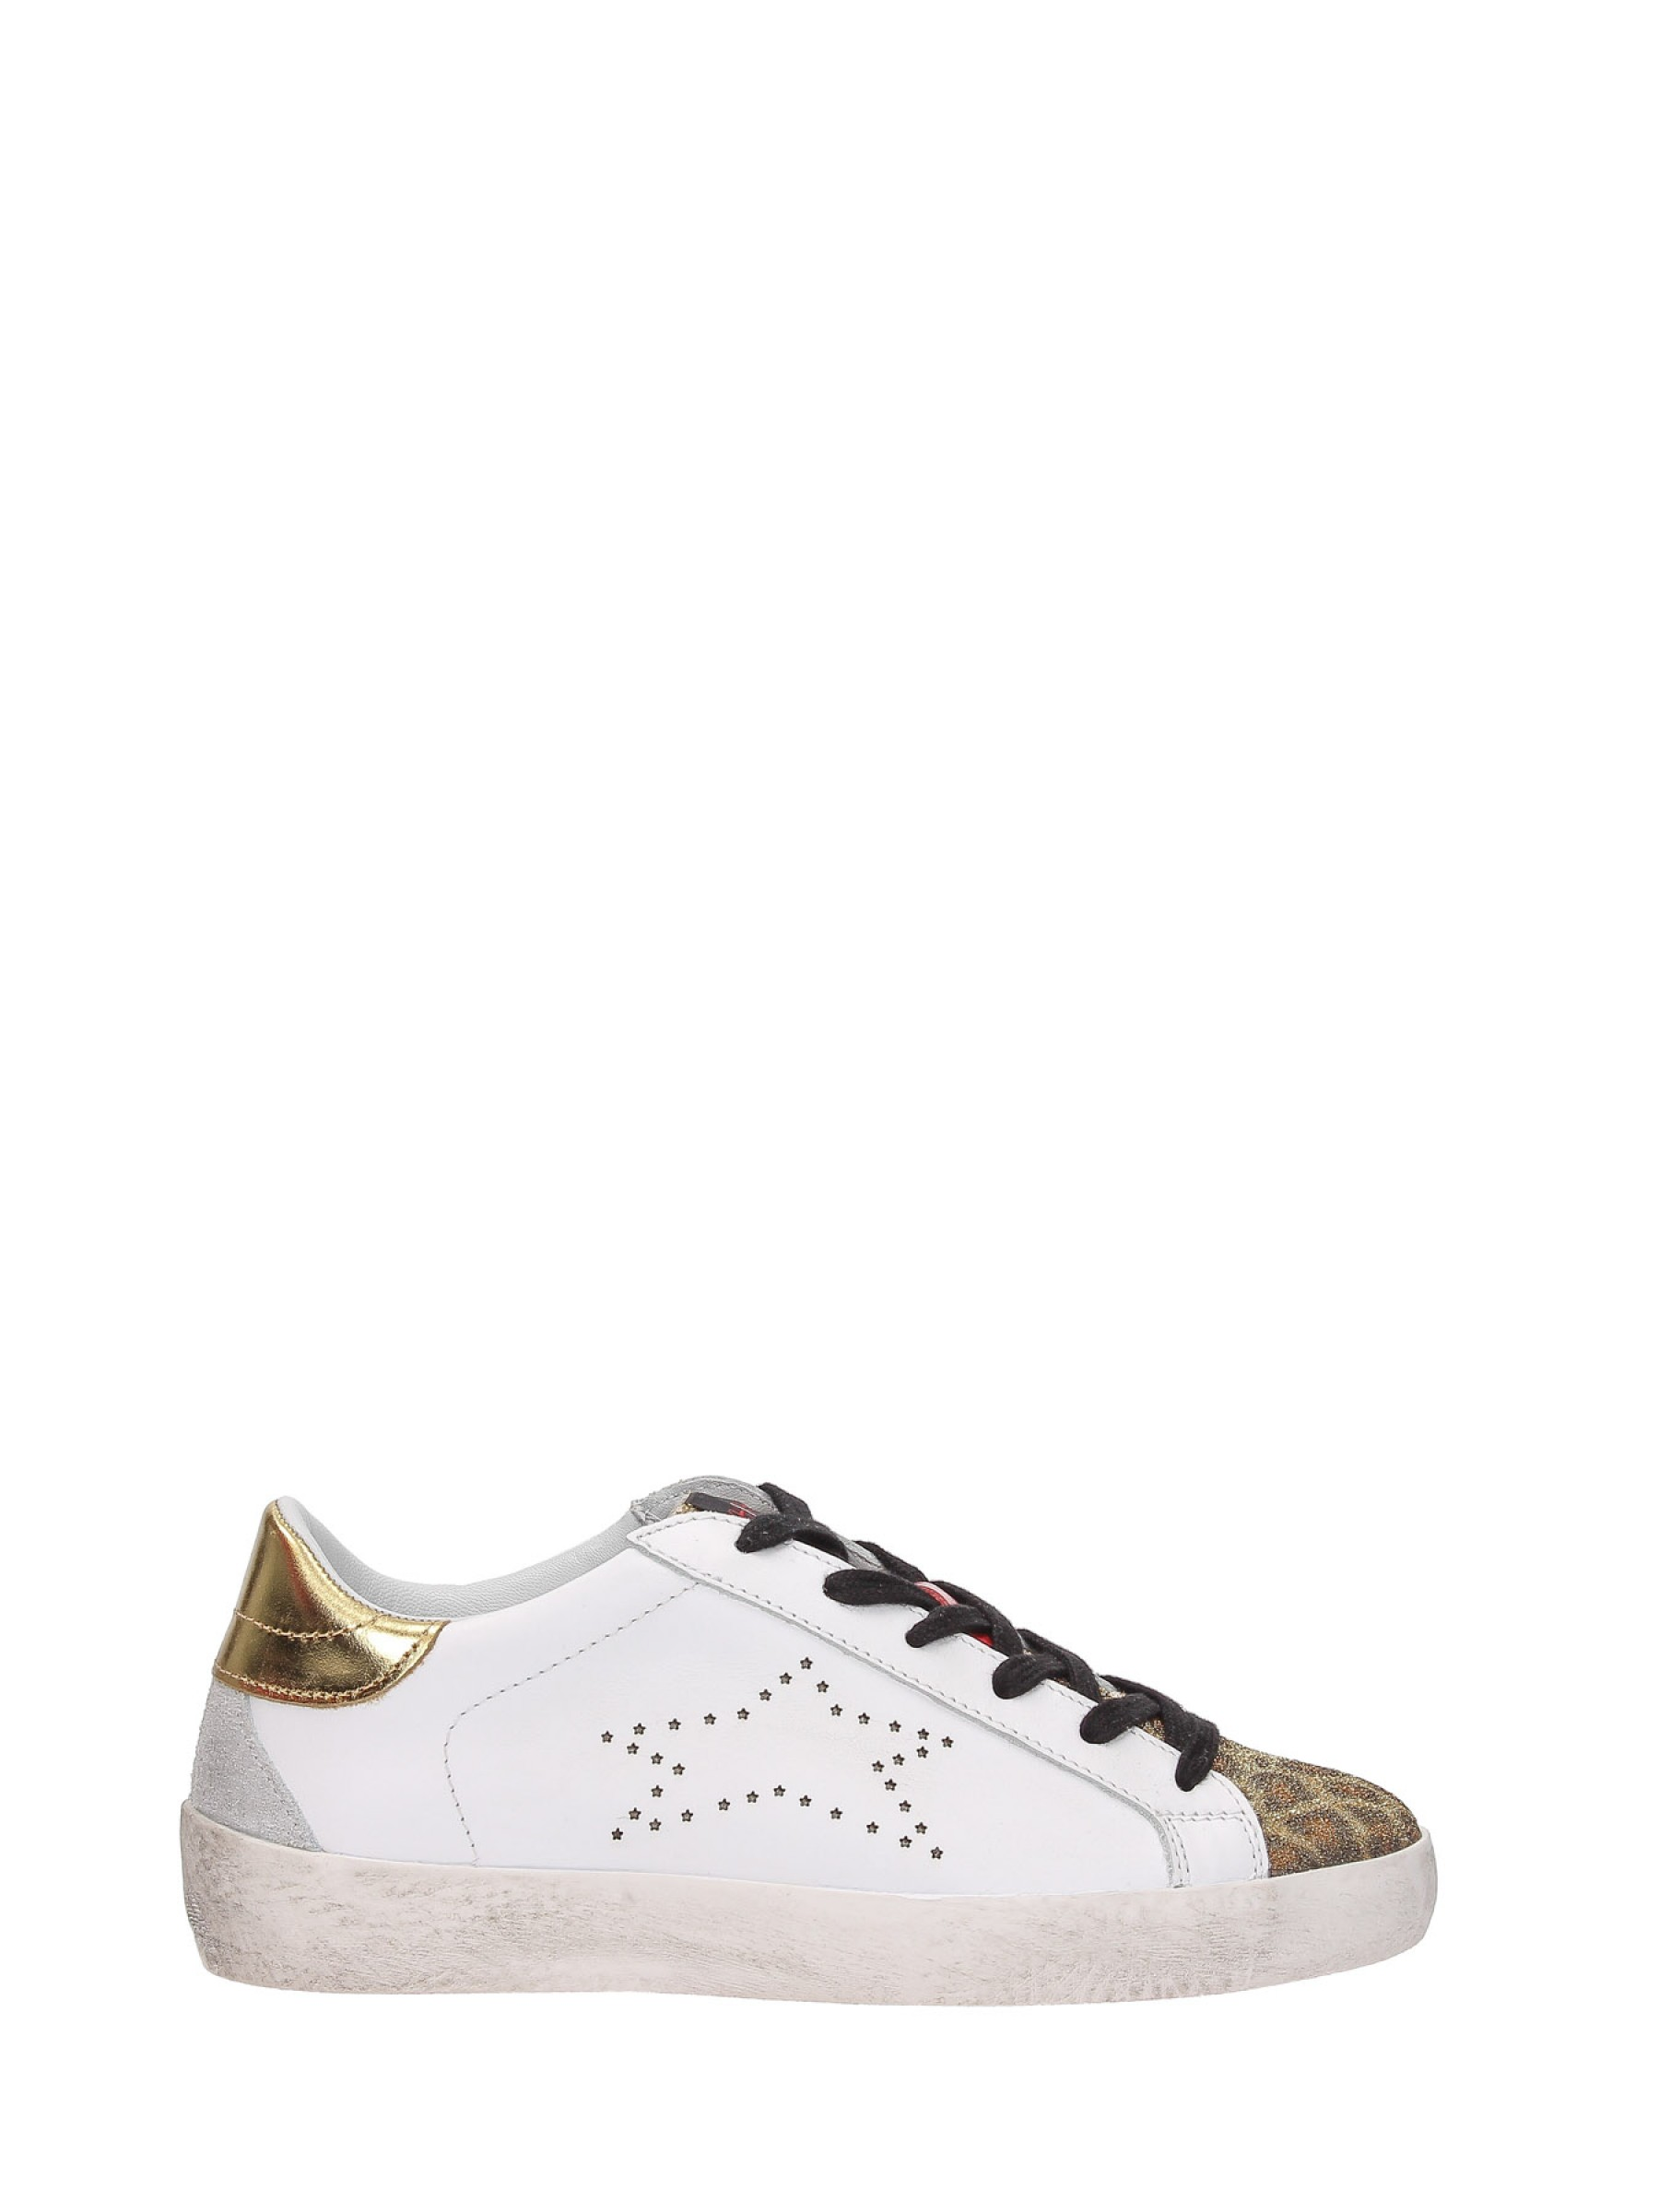 new style 7fbec 206d3 Scarpa Sneakers Donna Lowe